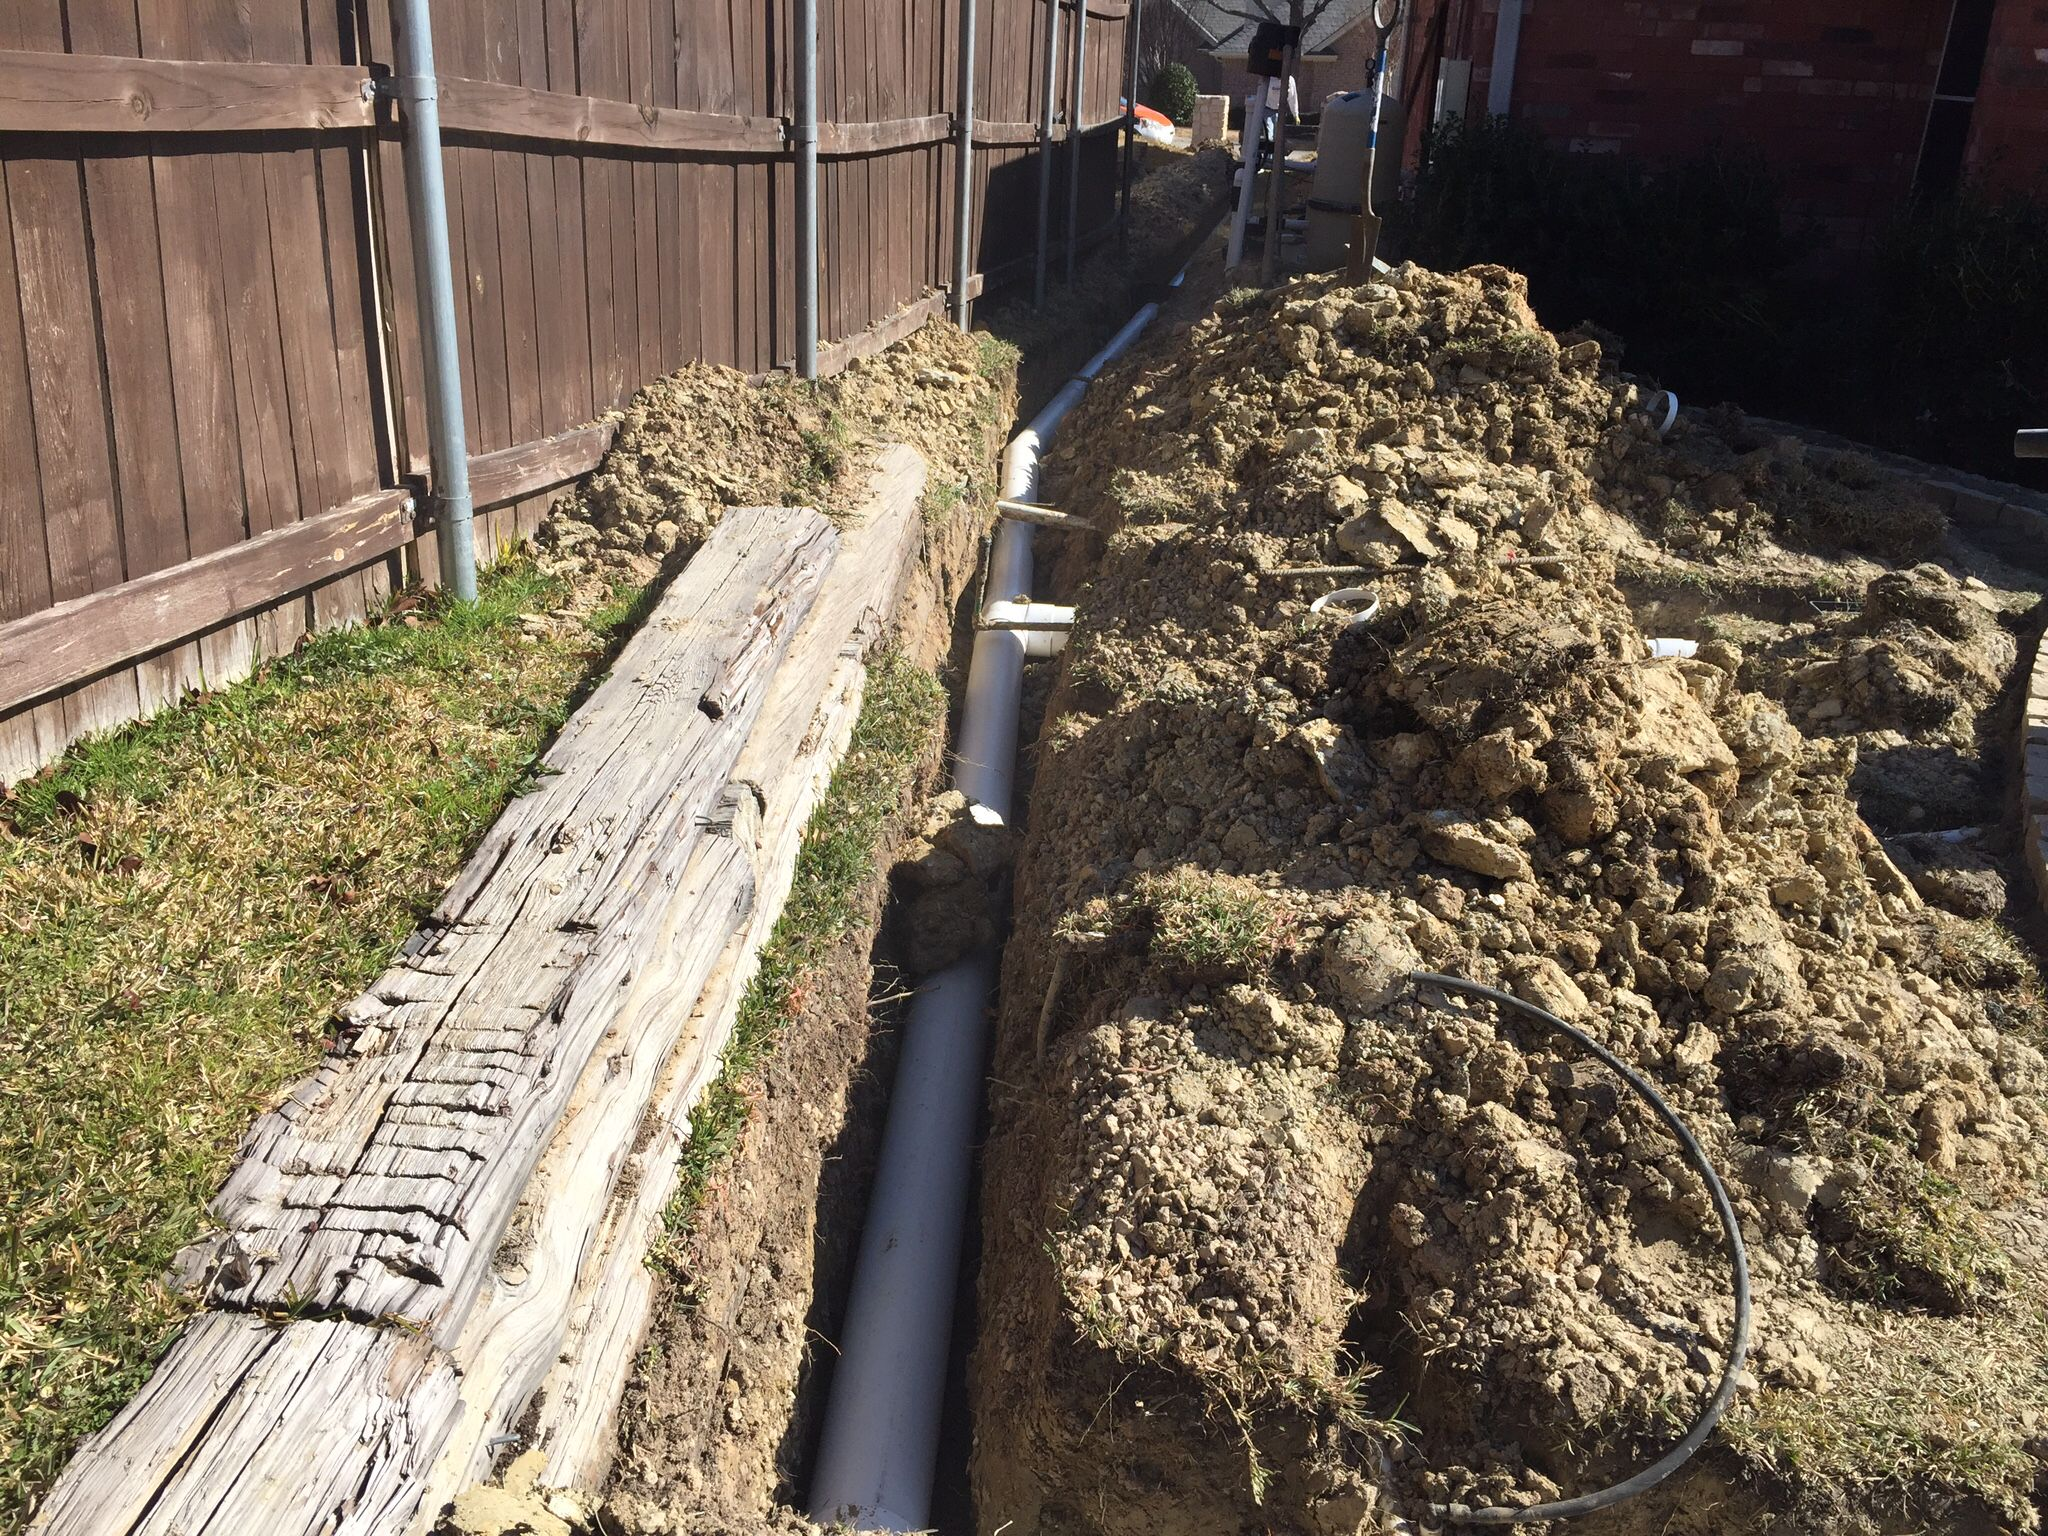 Drainage system installed for a back yard using 6 inch pvc for Garden drainage system